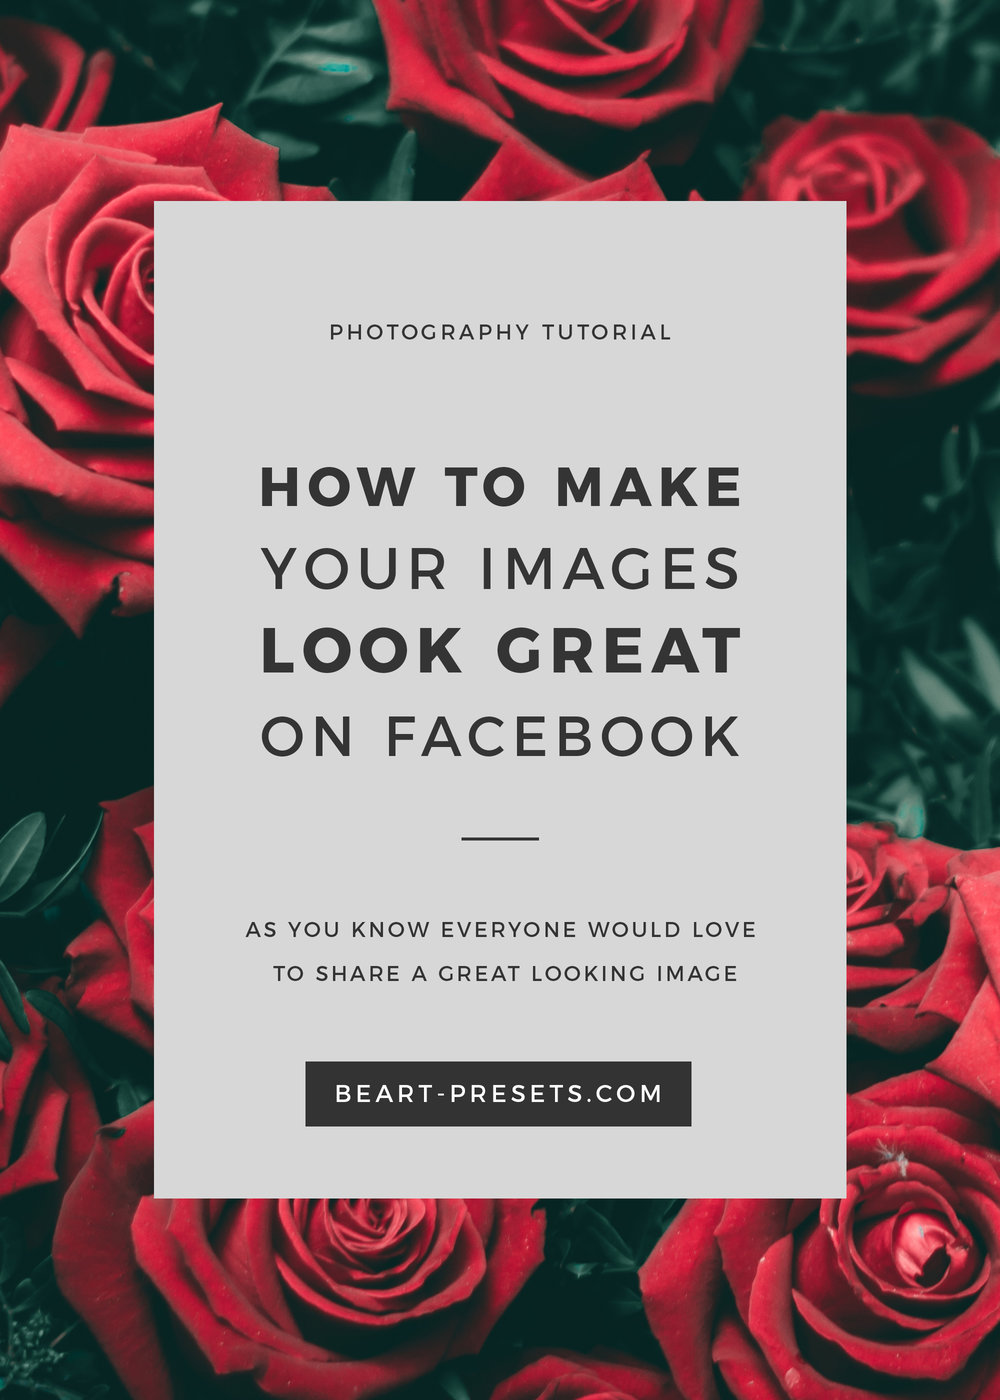 MAKE YOUR IMAGES LOOK GREAT